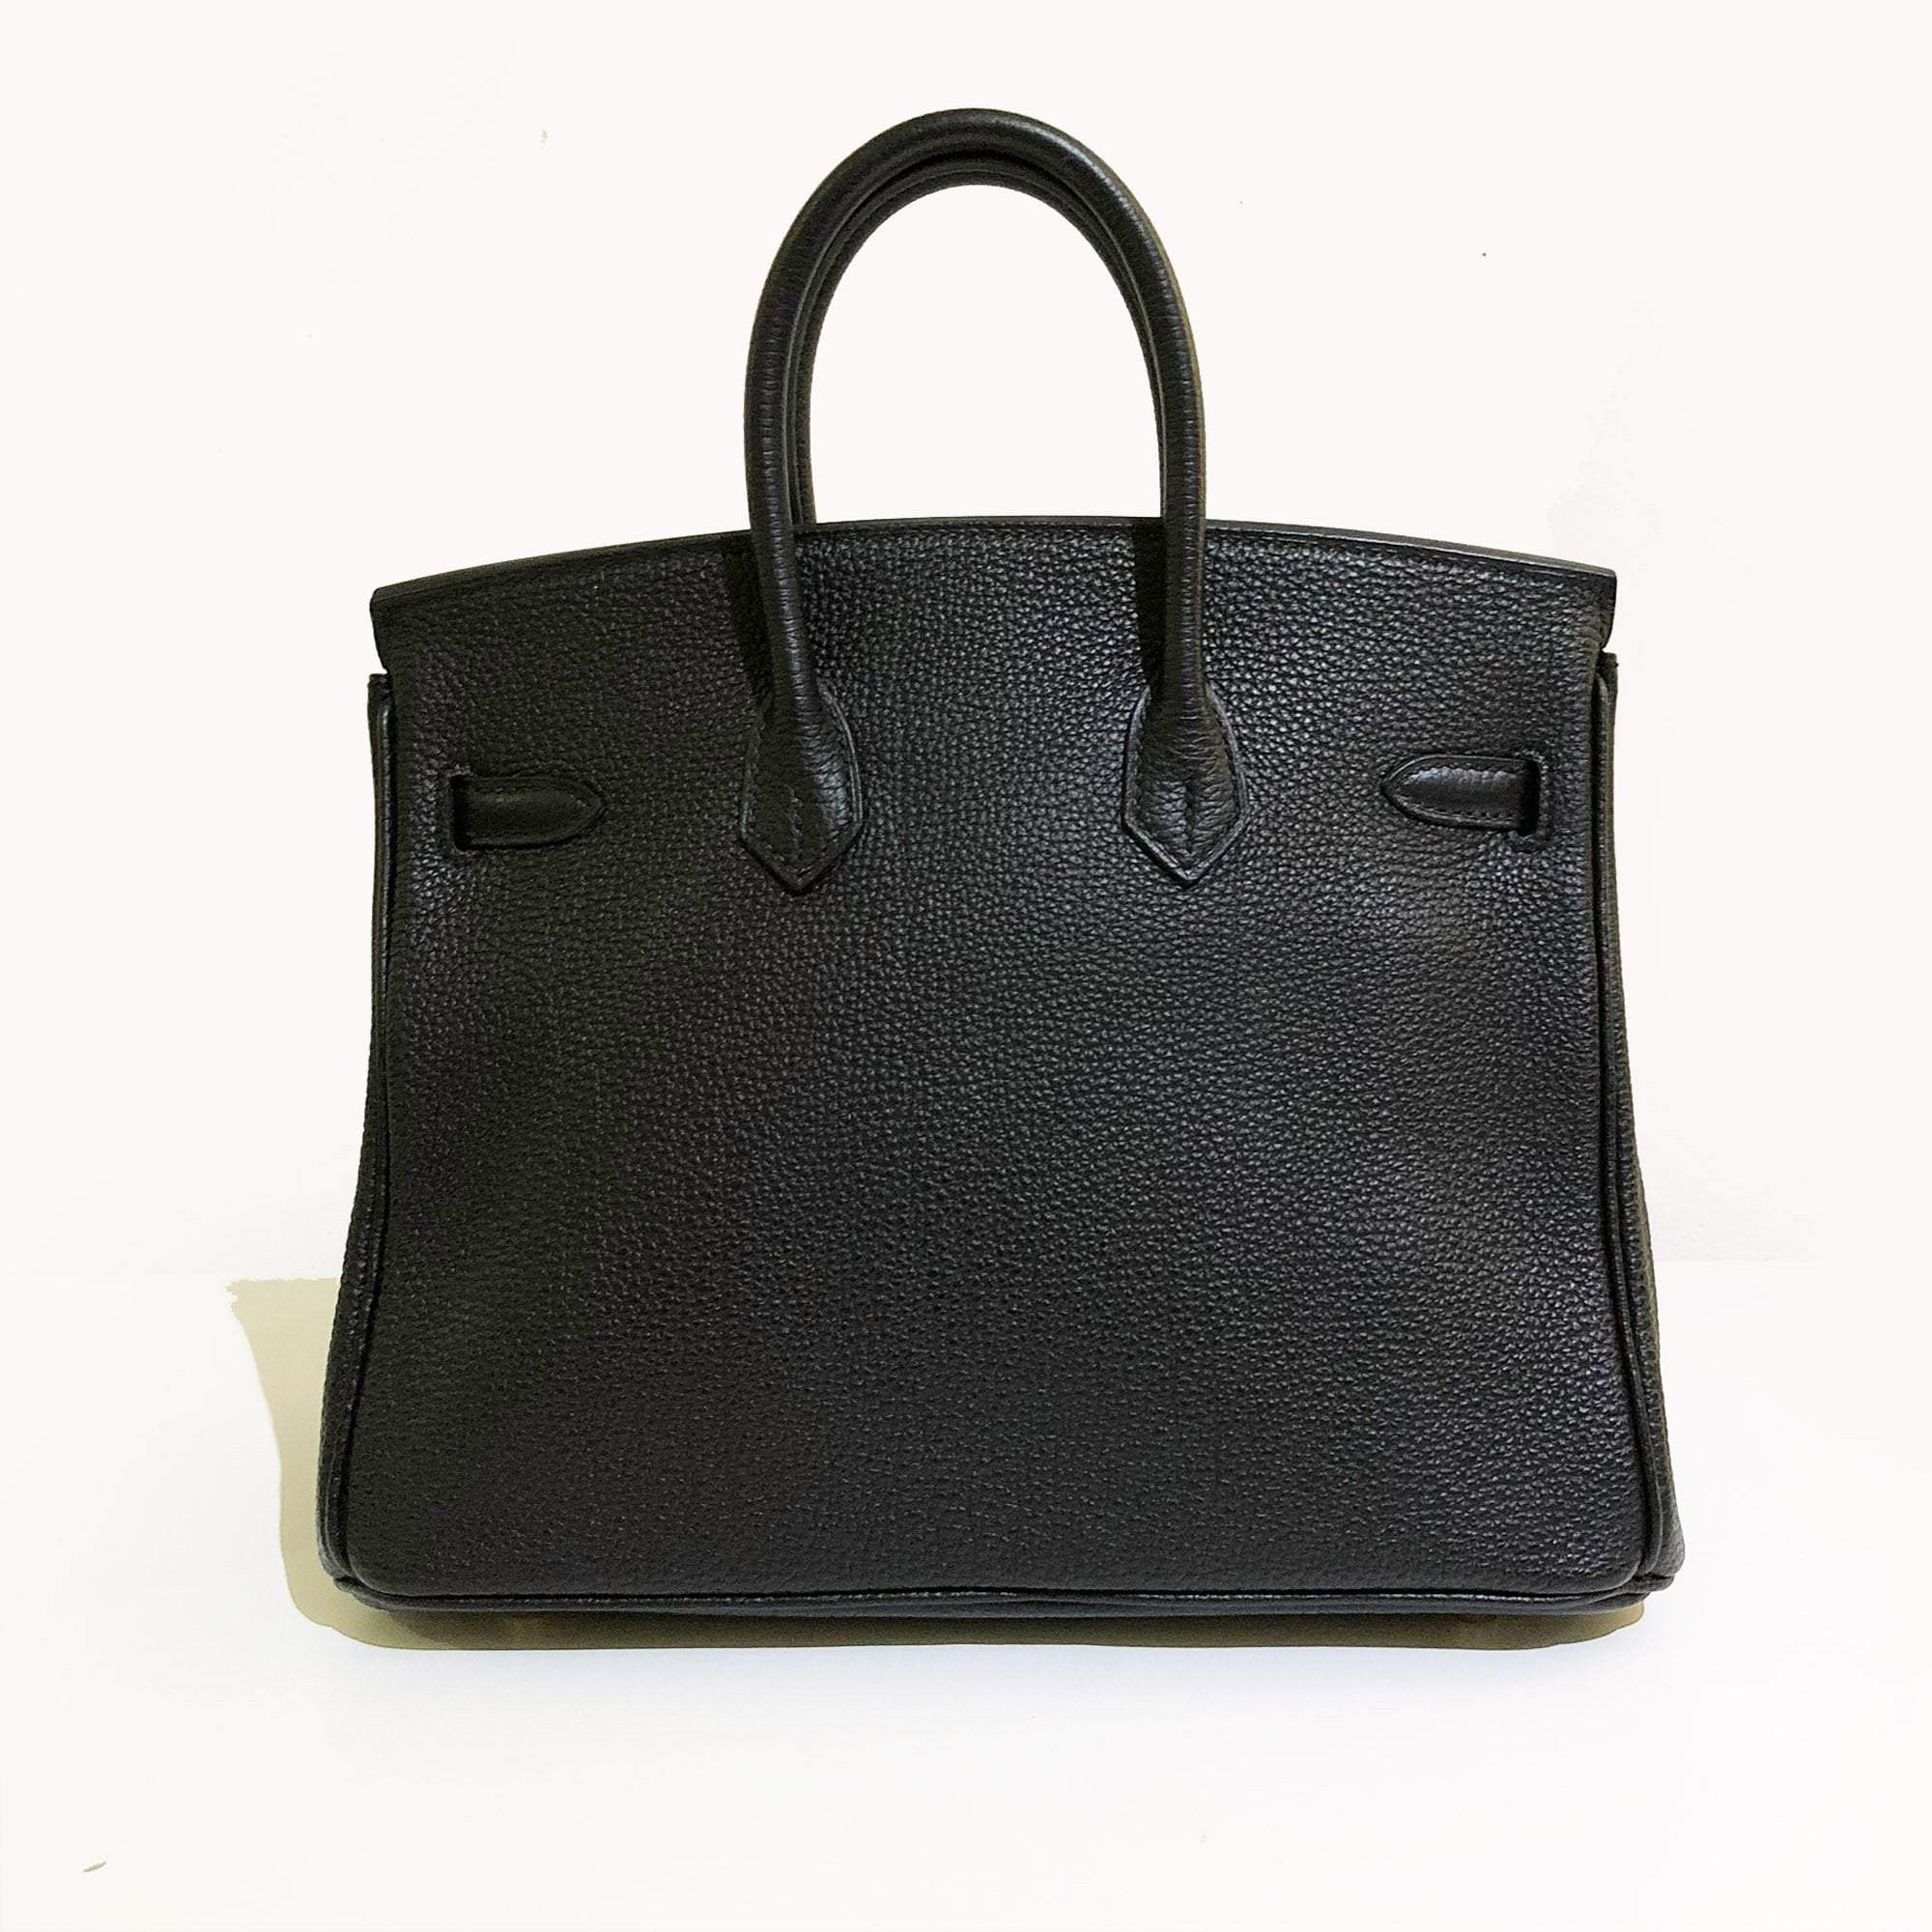 Hermes Birkin 25 Black Togo Bag